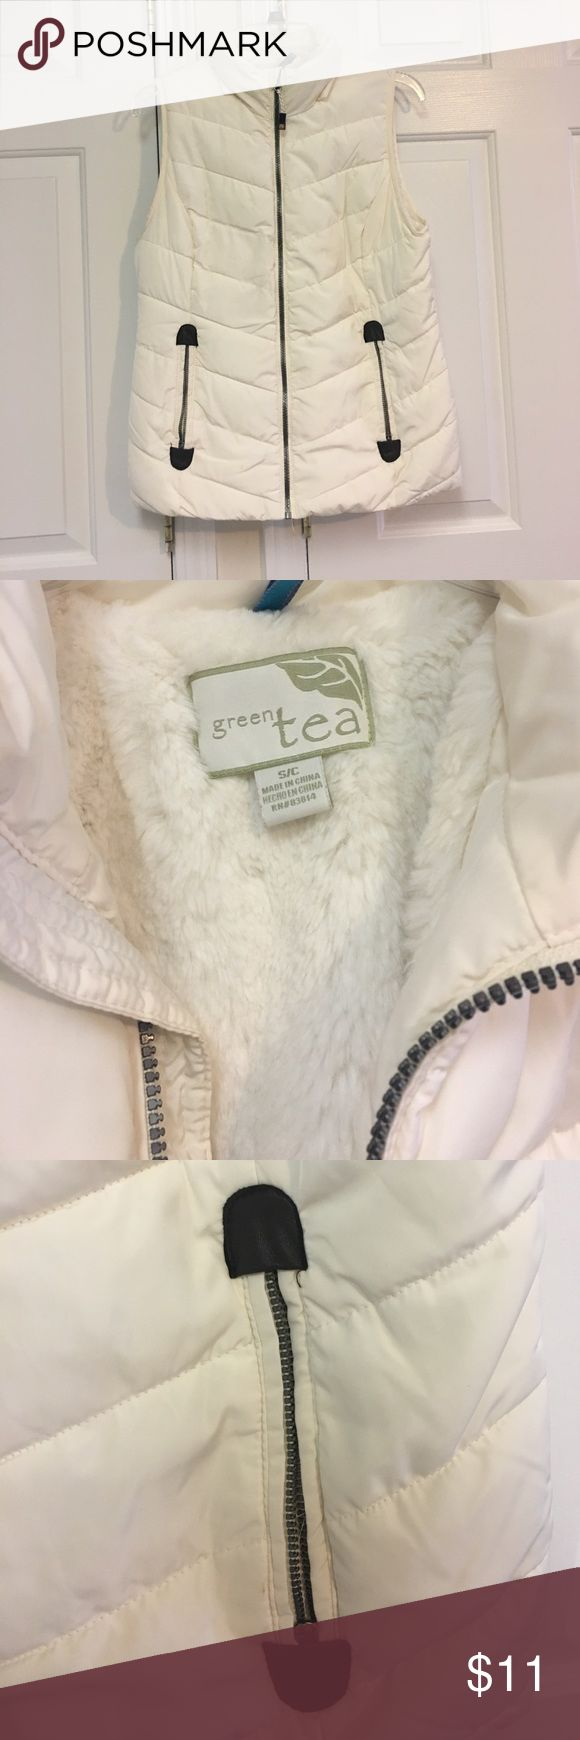 Off-white puffer vest Off white Green Tea puffer vest. Very fuzzy and cozy on the interior. Size small! Has been worn only 2-3 times 😊 Jackets & Coats Vests